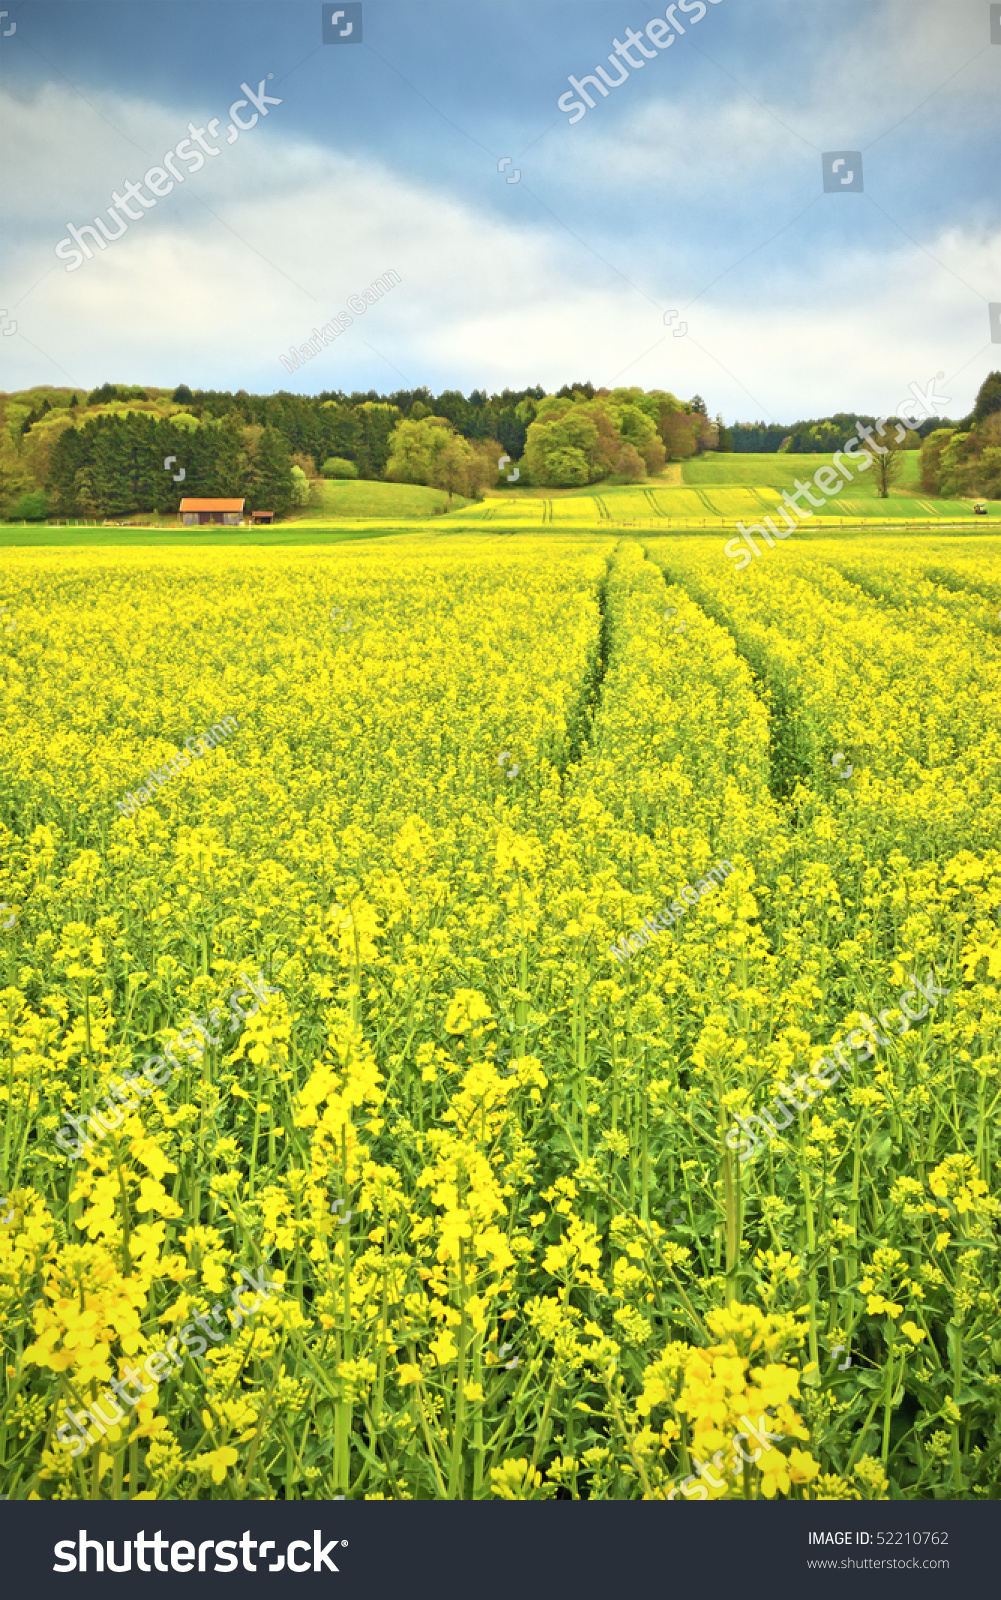 A Yellow Rapeseed Field In Bavaria Germany Stock Photo 52210762 : Shutterstock1001 x 1600 jpeg 1153kB